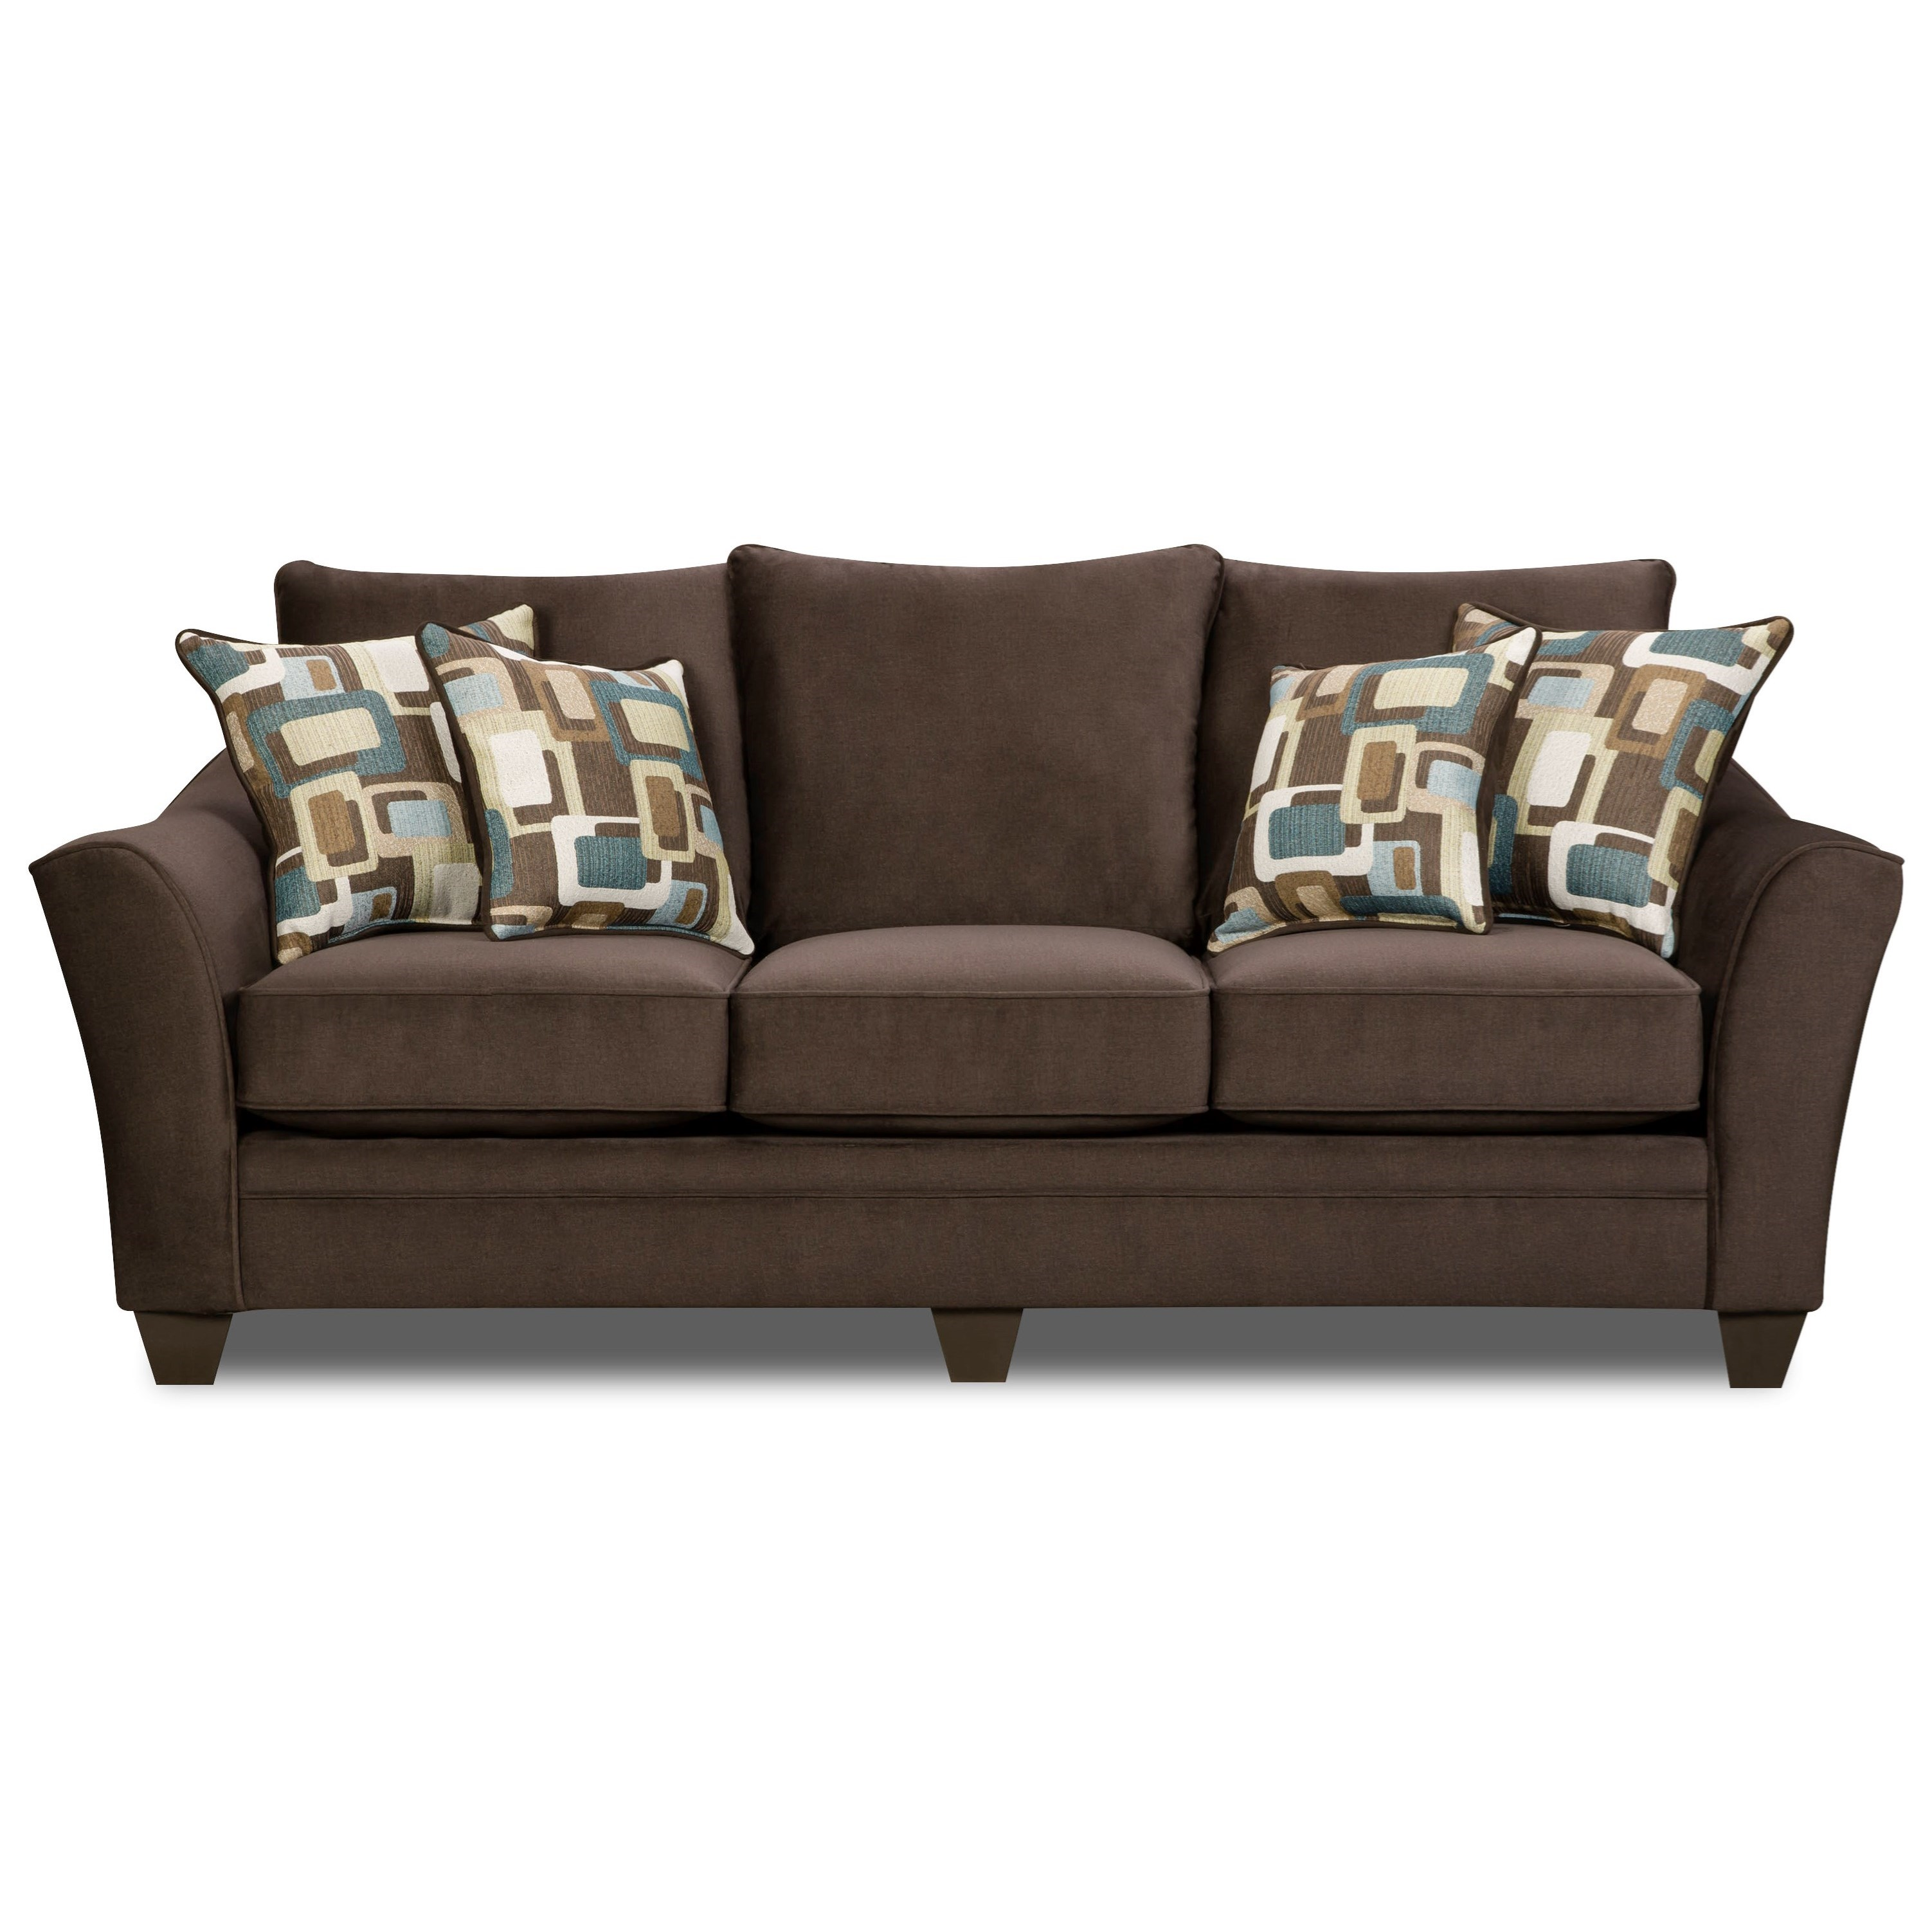 American Furniture 3850 Sofa - Item Number: 3853-4041